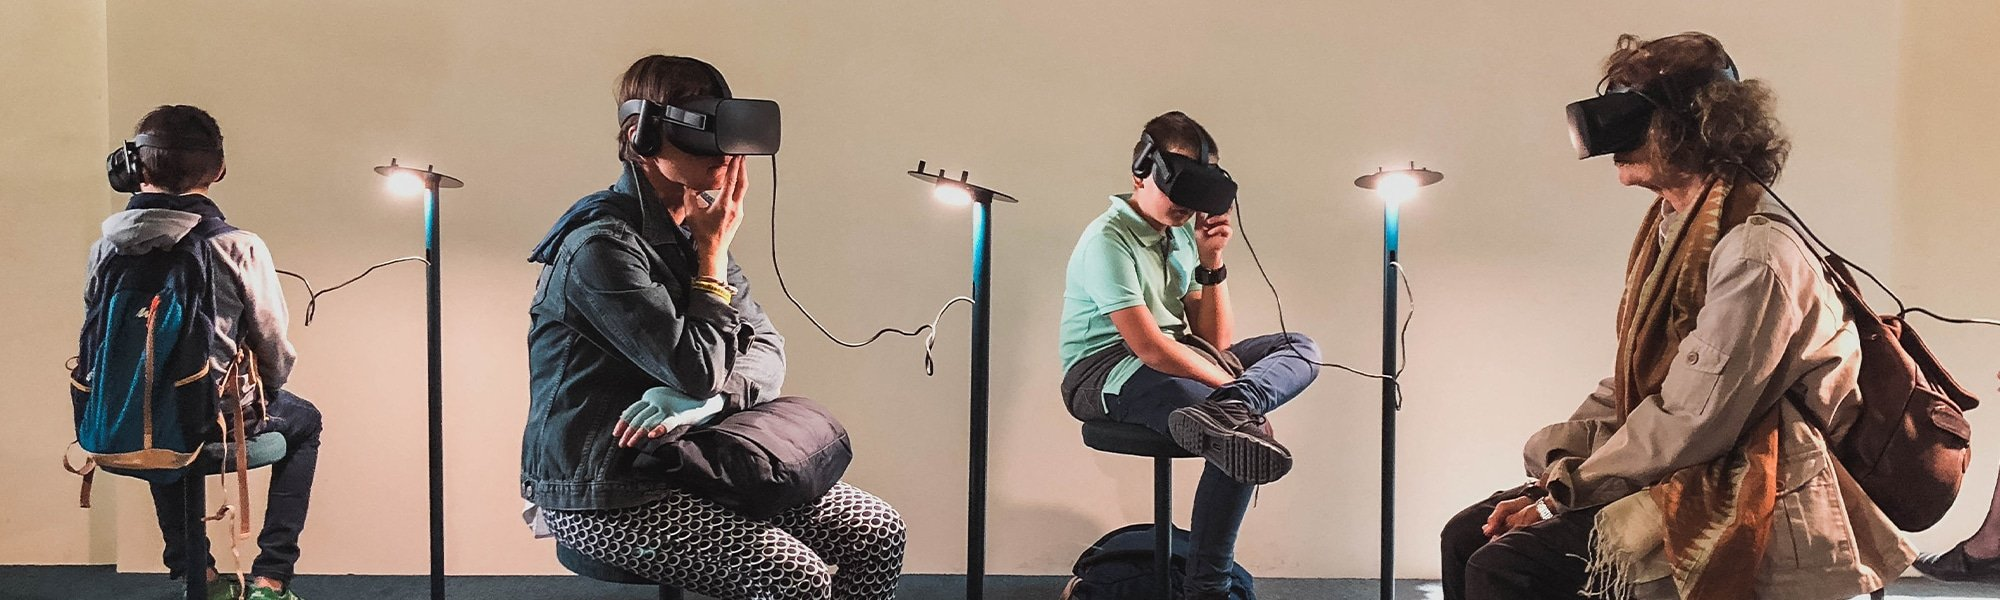 How Immersive Technology is Taking the Travel + Tourism Industry by Storm